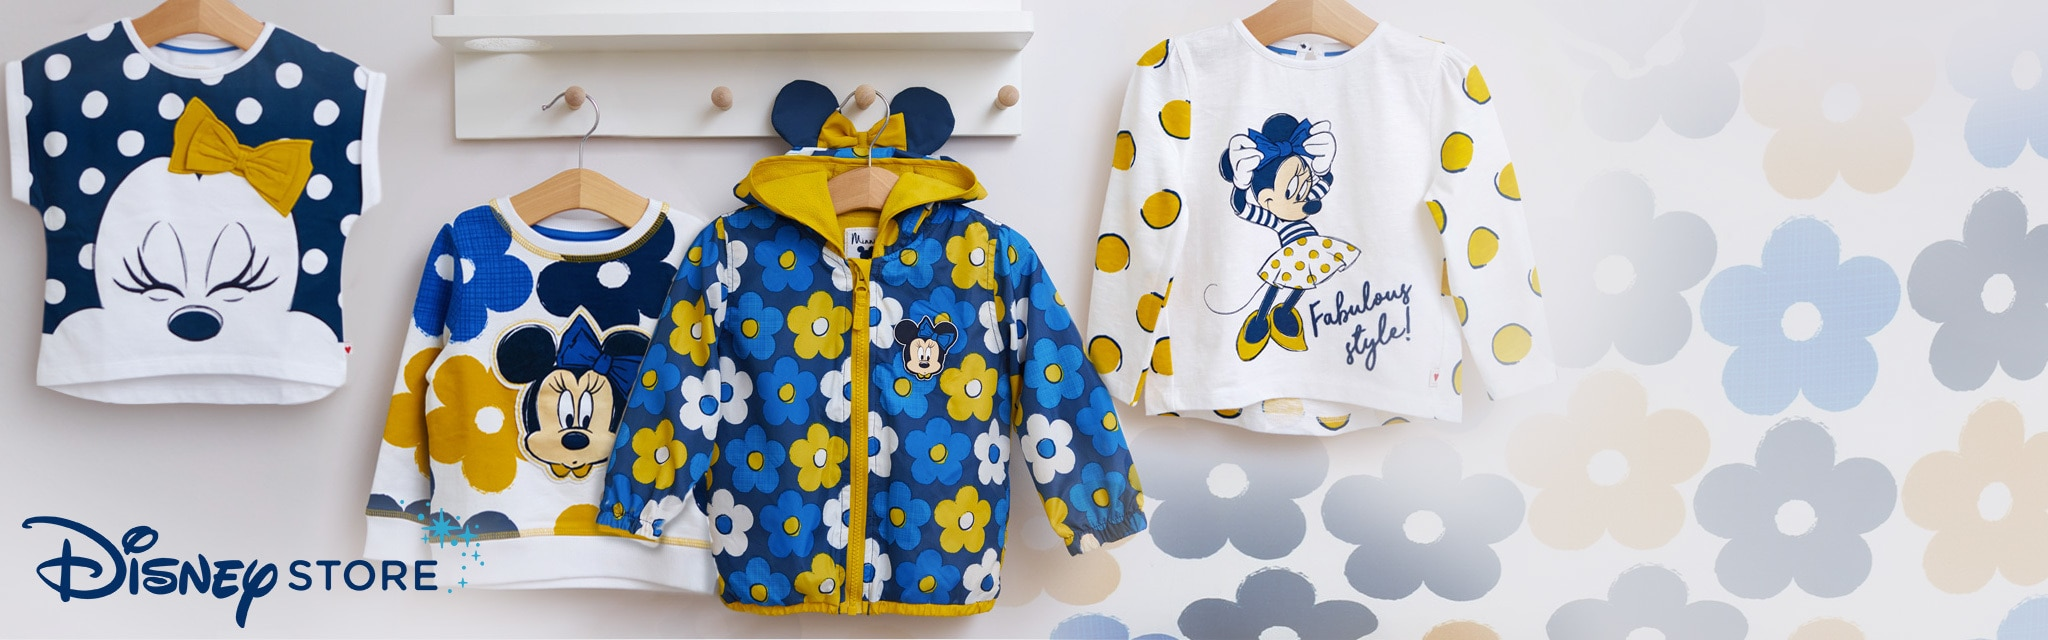 TDS: Minnie Collection - Homepage (hero)